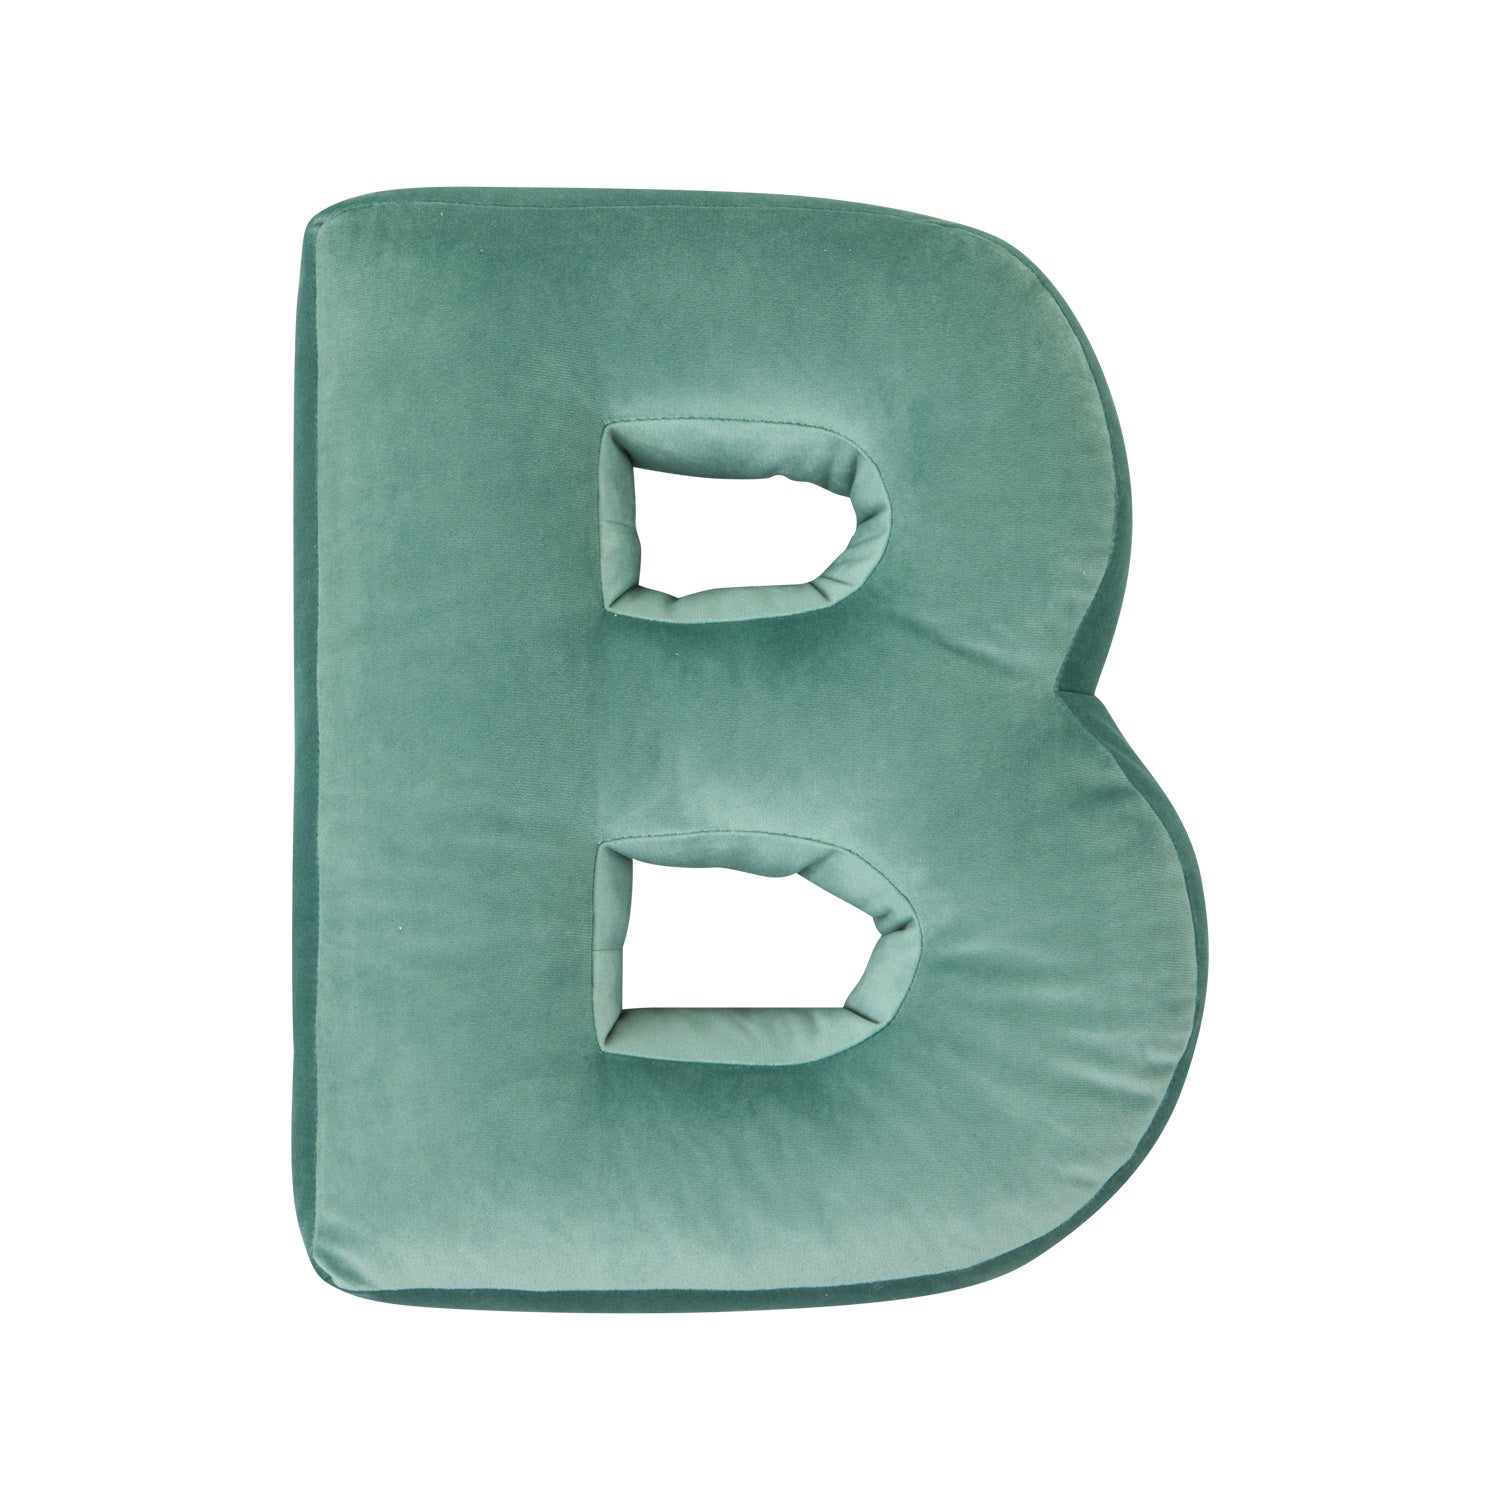 Velvet Letter C Cushion by Betty's Home - Click for colour options!